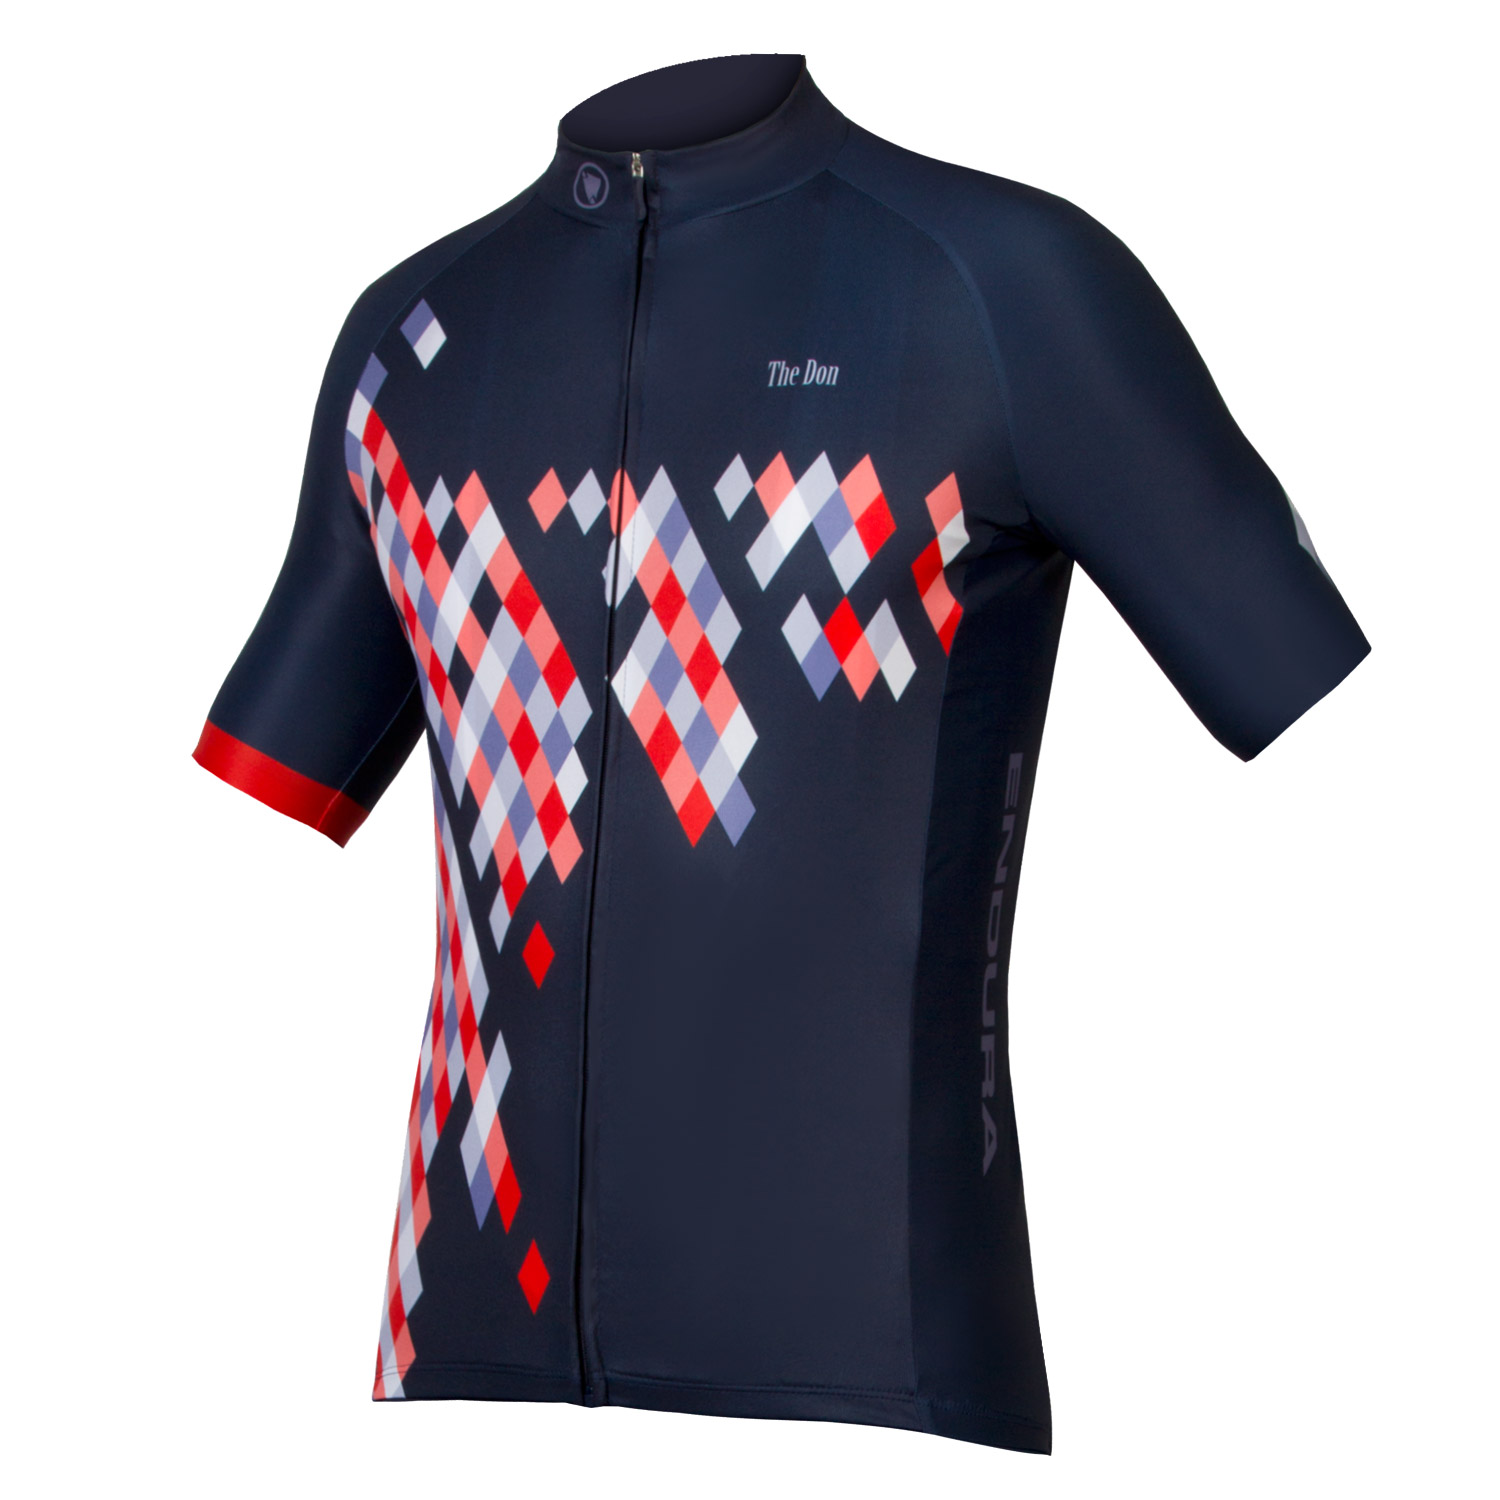 'The Don' Race Jersey